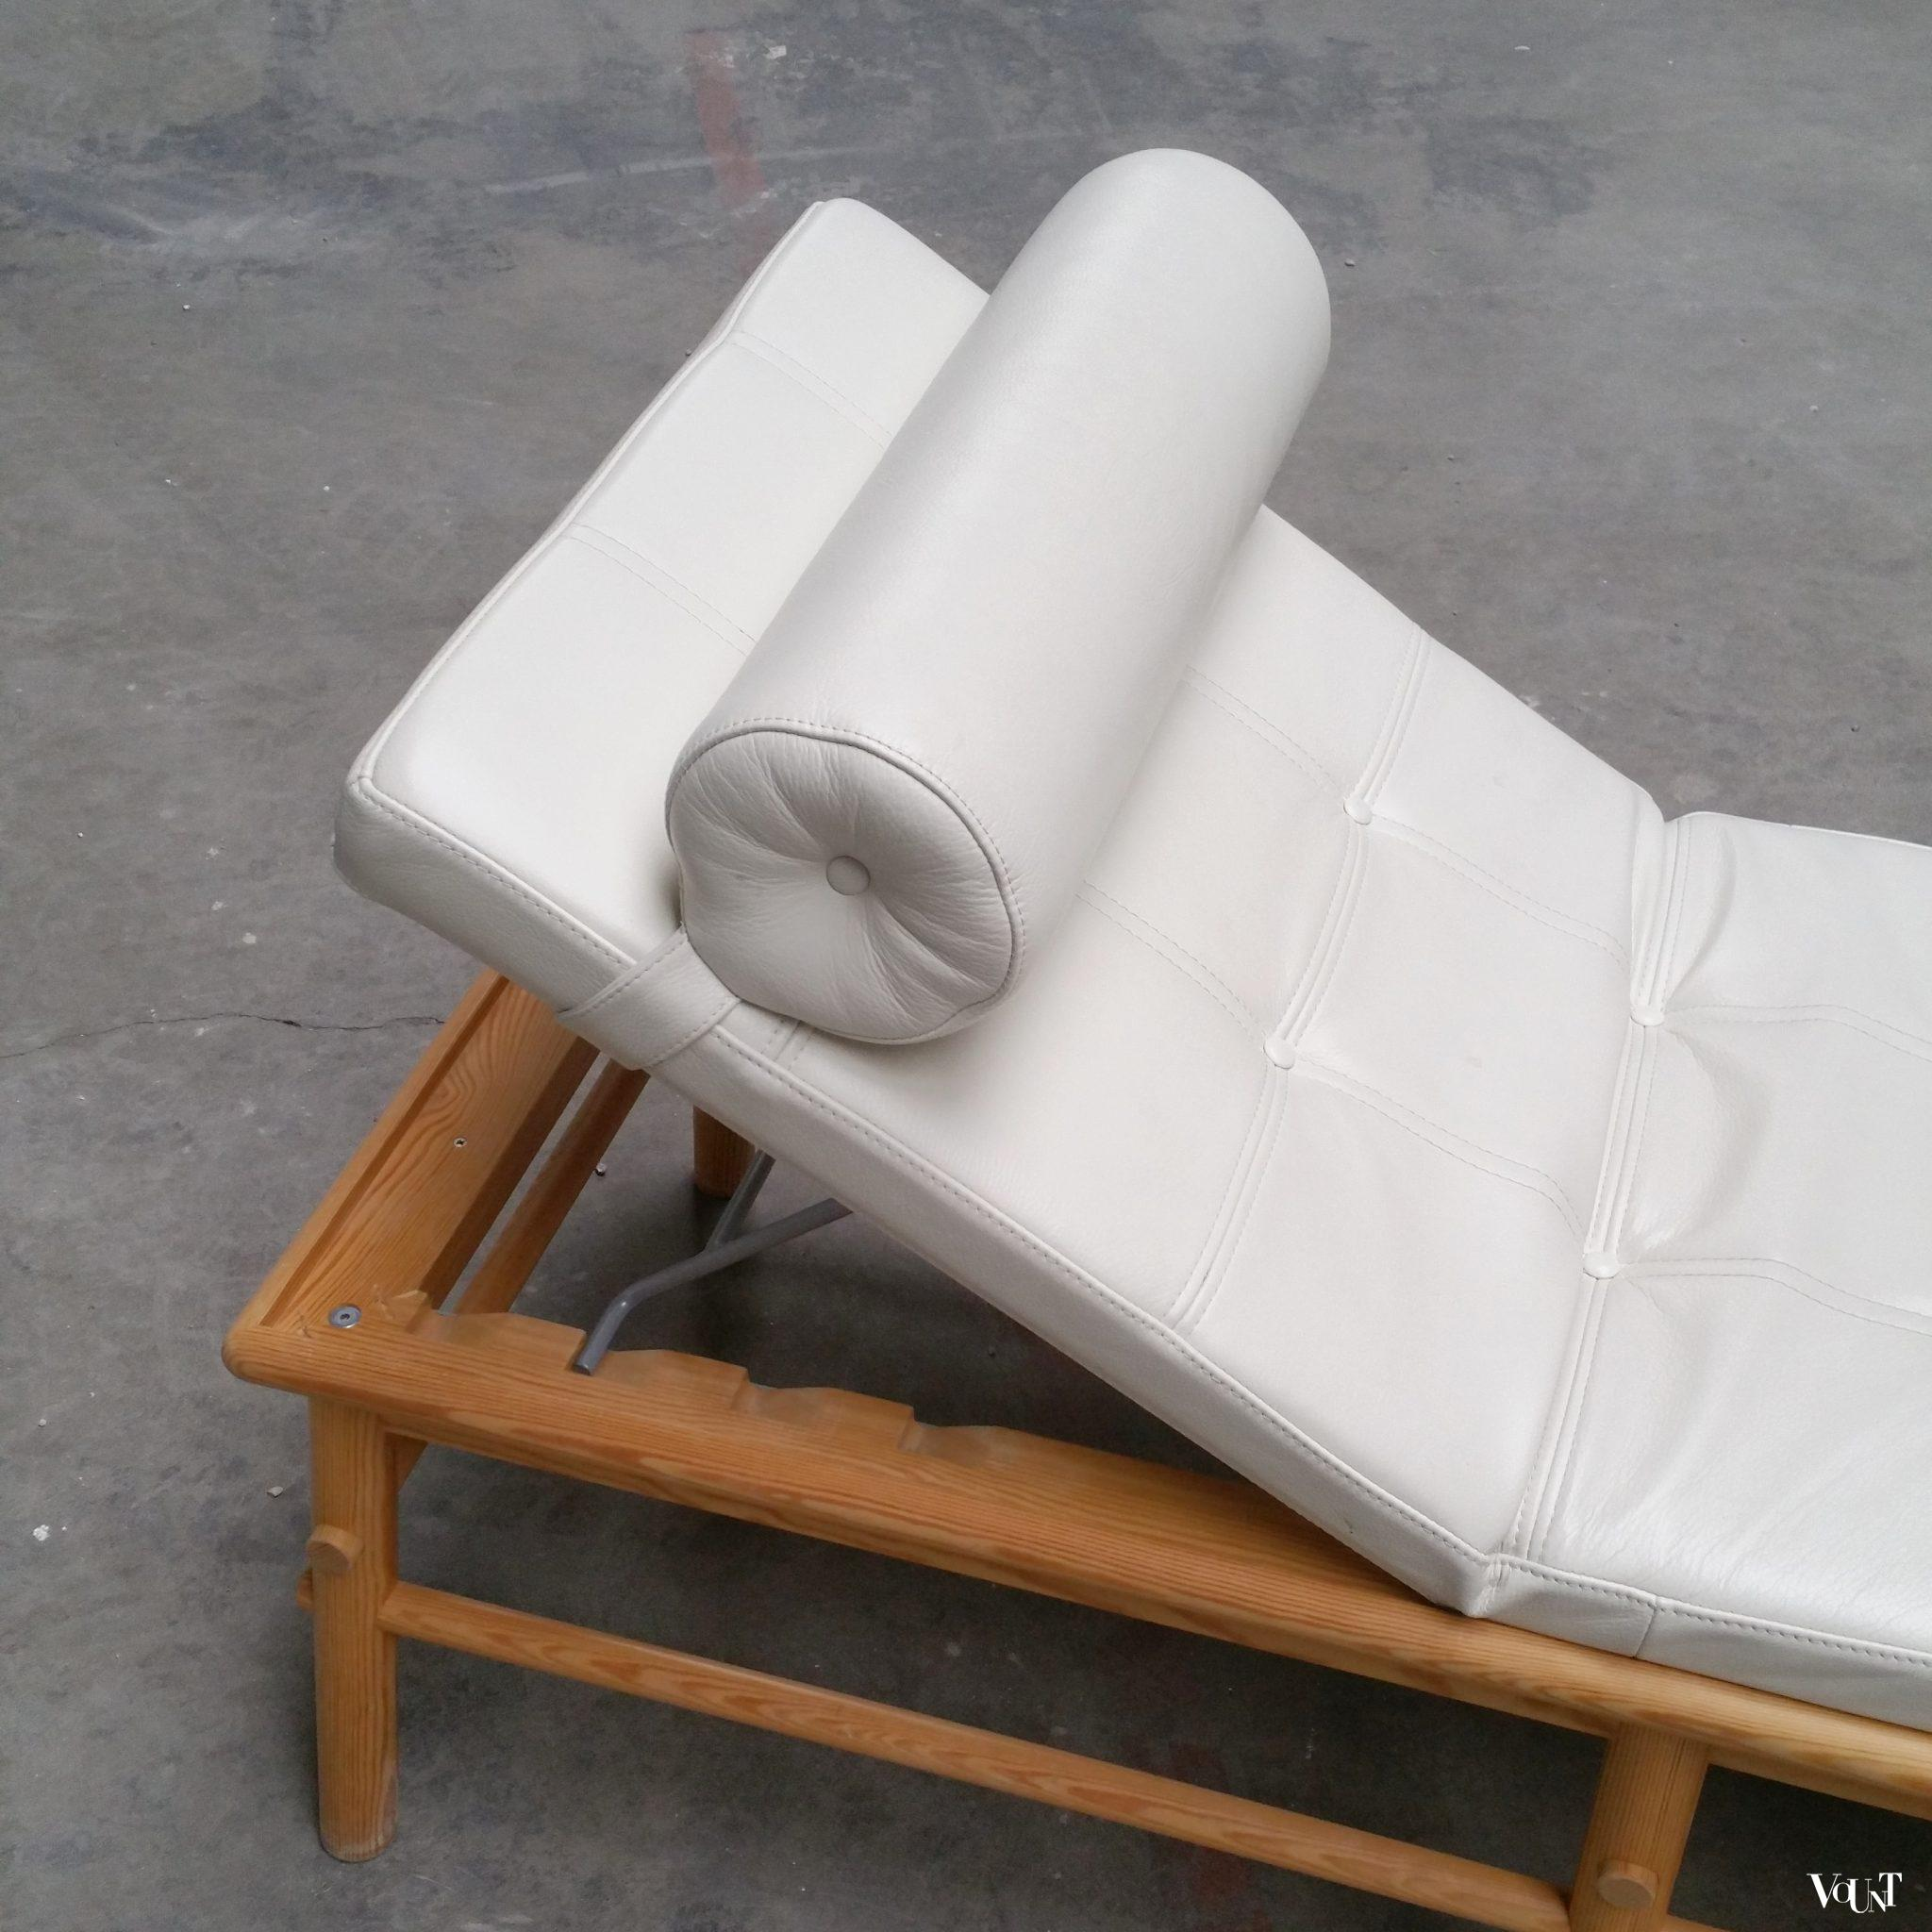 Ikea PS ligbed daybed August (Nike Karlsson, 2009)